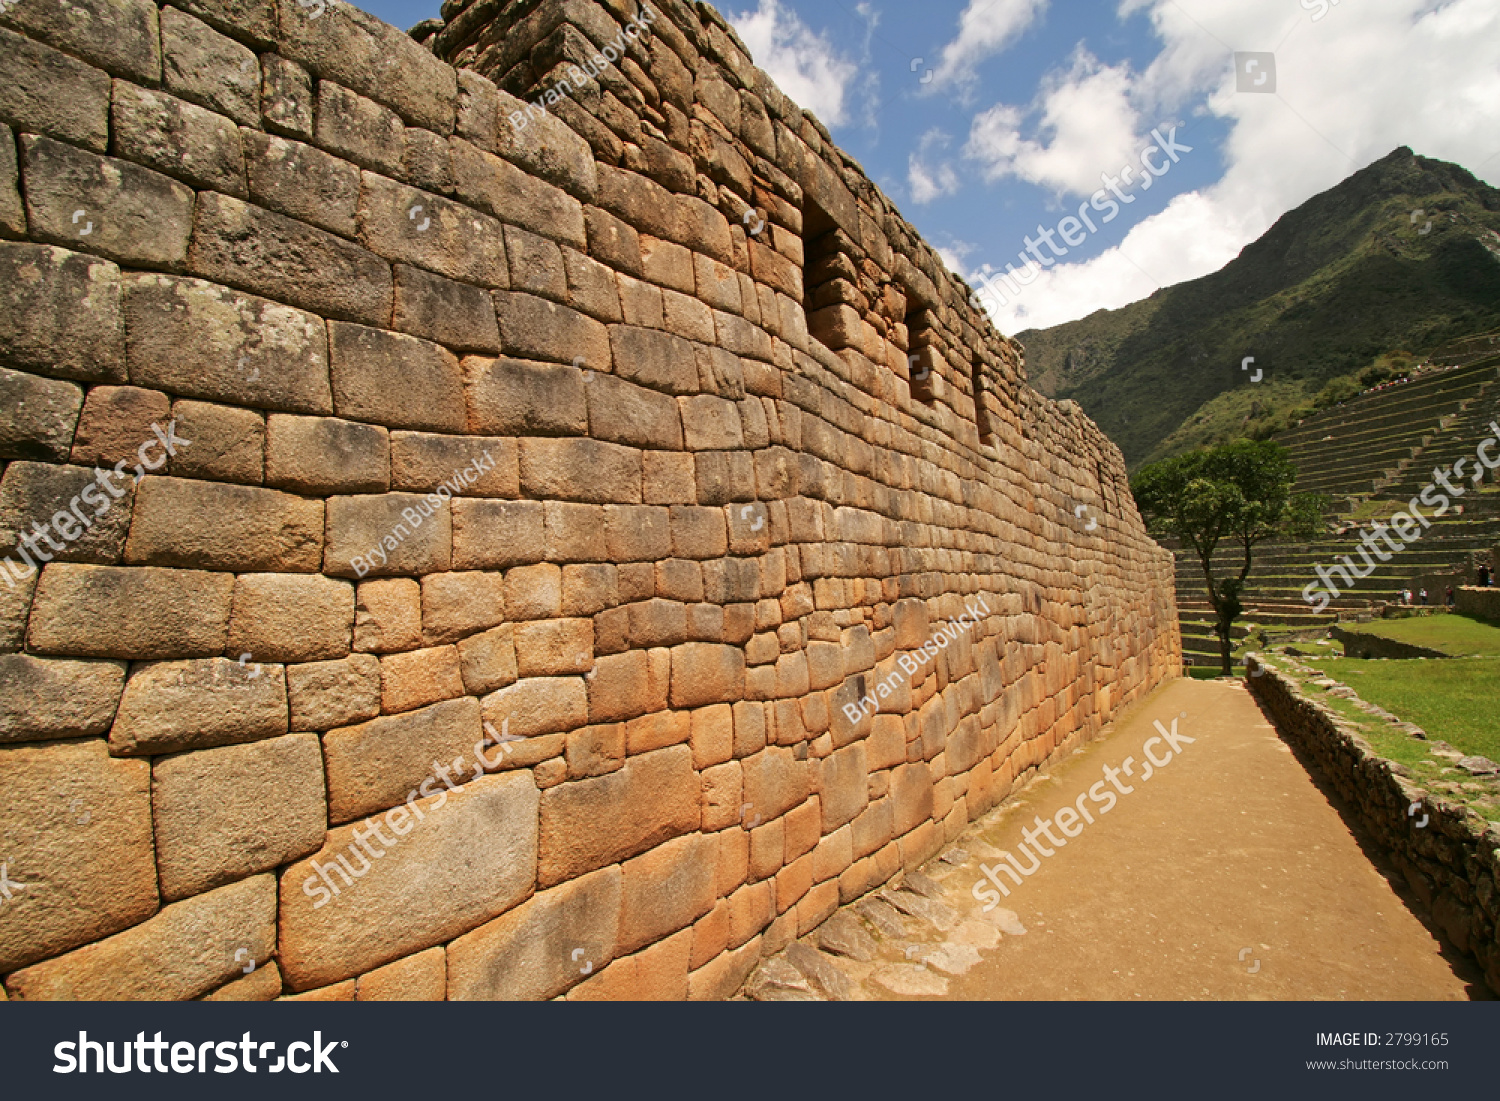 The Artisan S Wall At The Incan Ruins Of Machu Picchu In